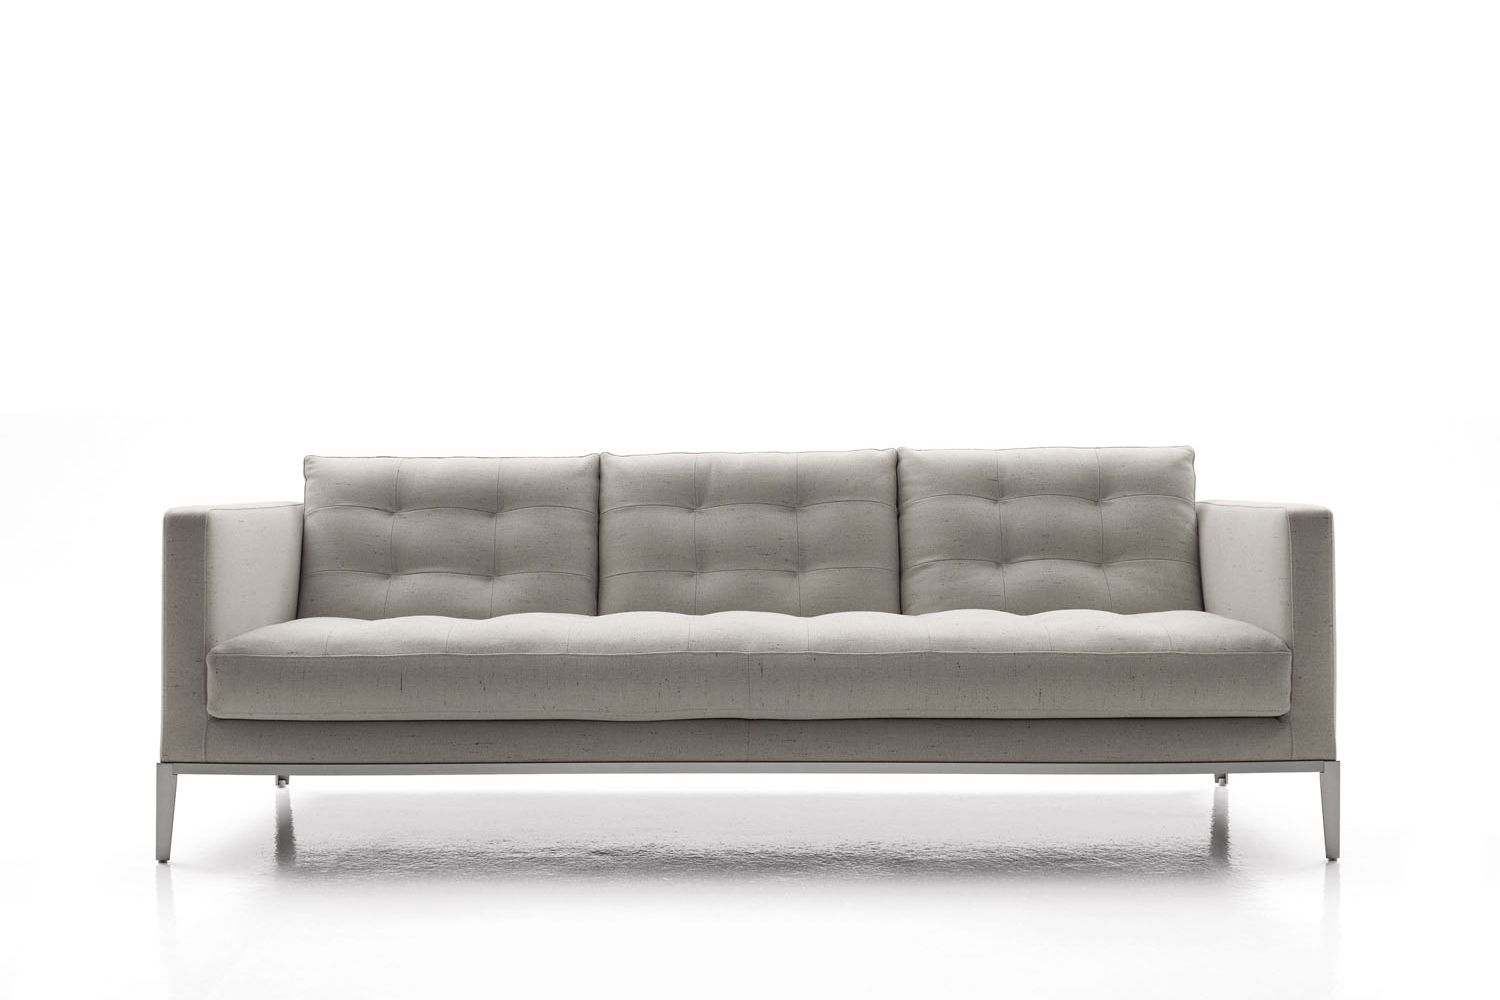 lounging sofa sleeper value city ac lounge by antonio citterio for b andb italia project